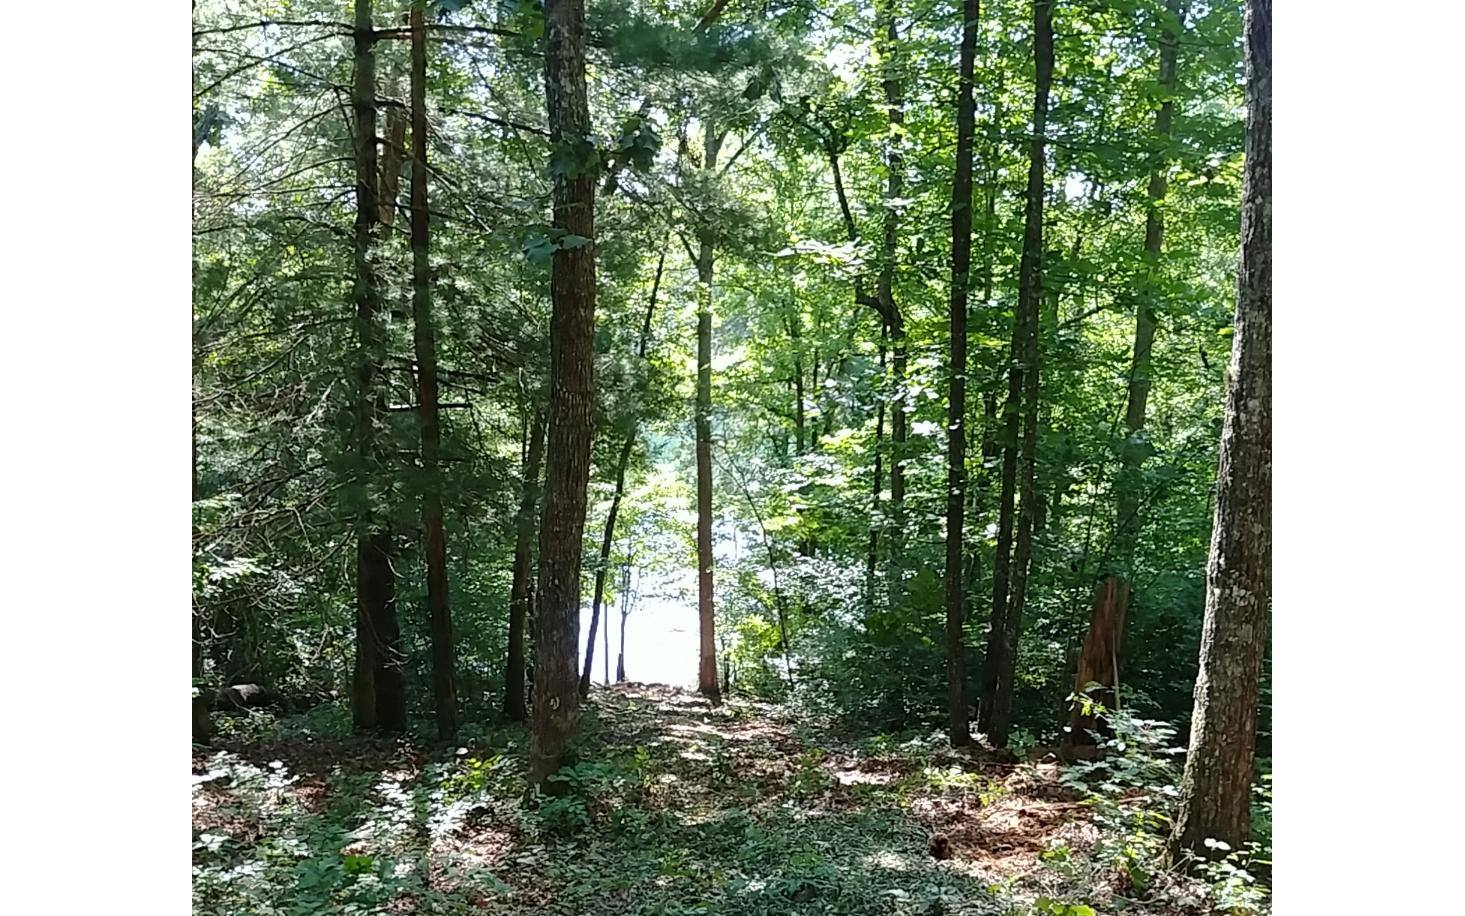 LOT 9 FOREST DRIVE